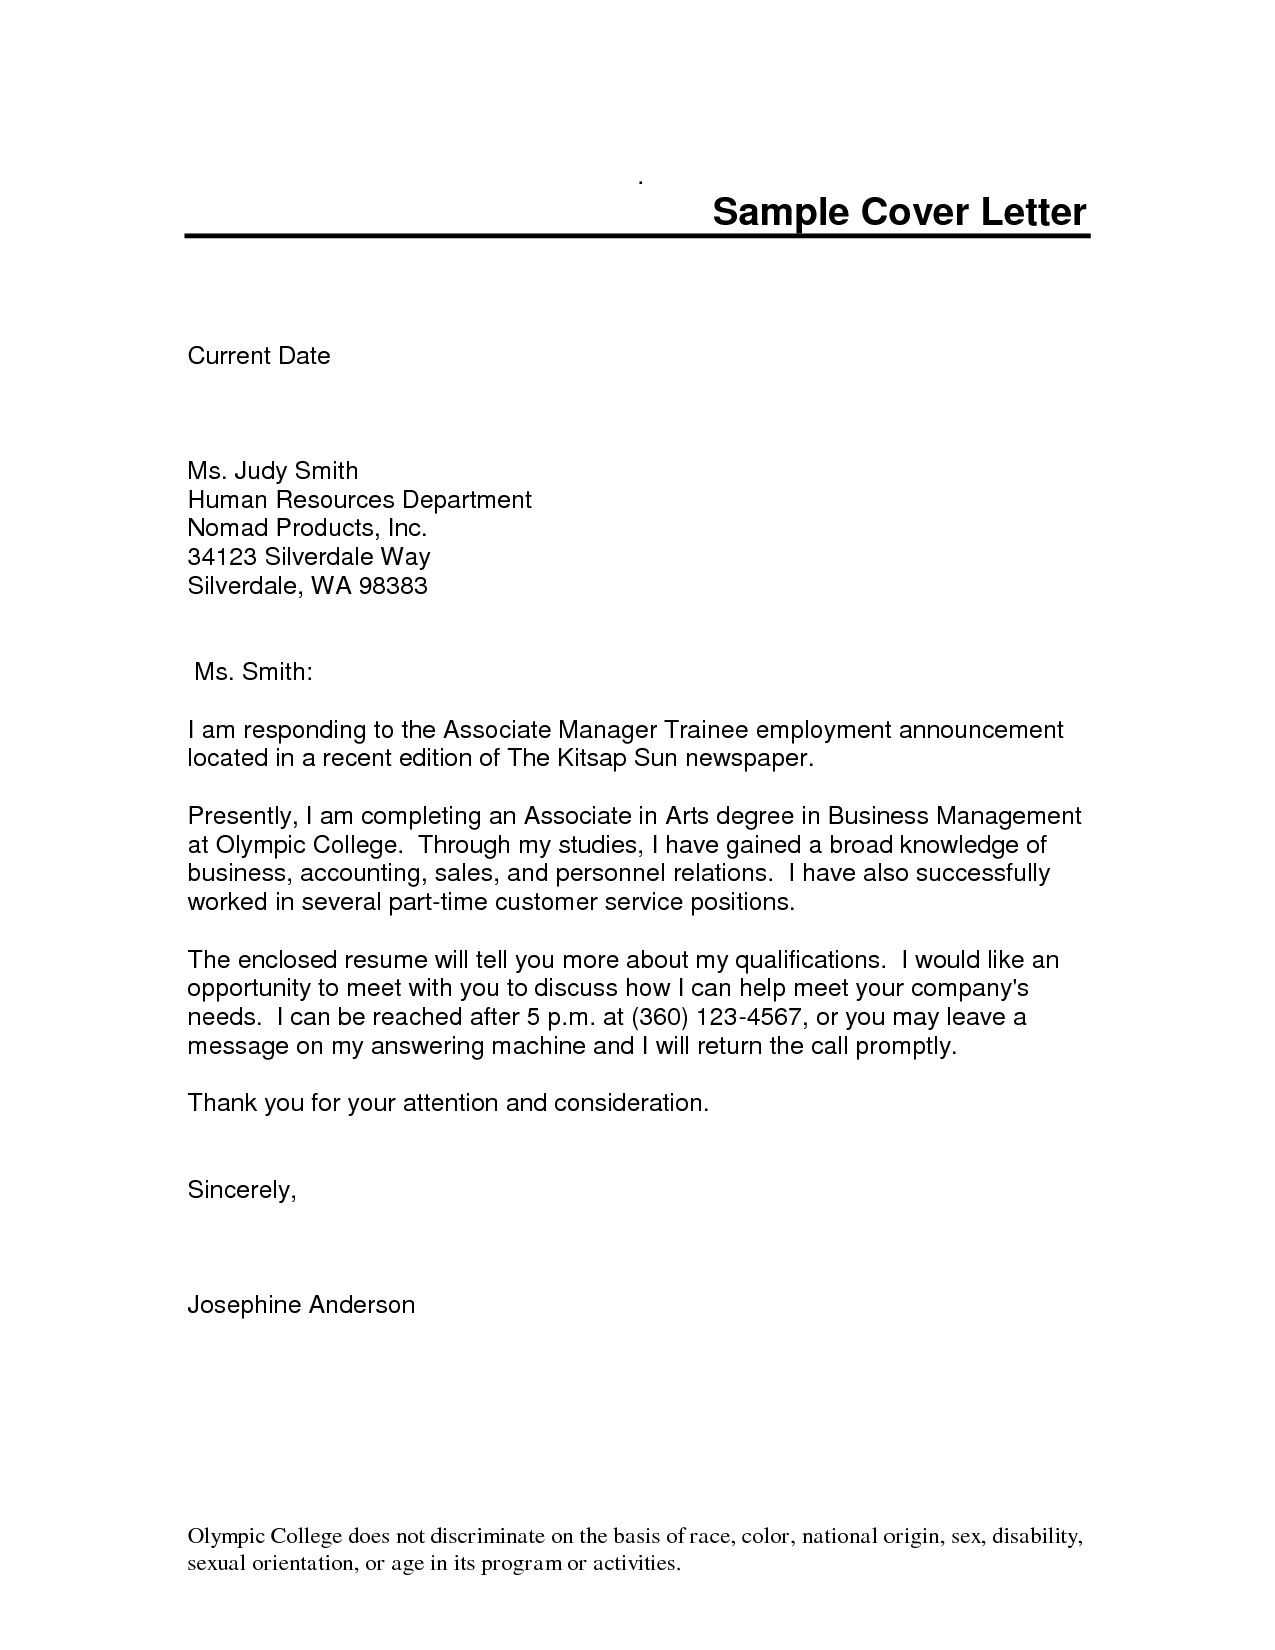 Free Cover Letter Template Microsoft Word Whats Cover Letter With Regard To Letter Of Interest Template Microsoft Word